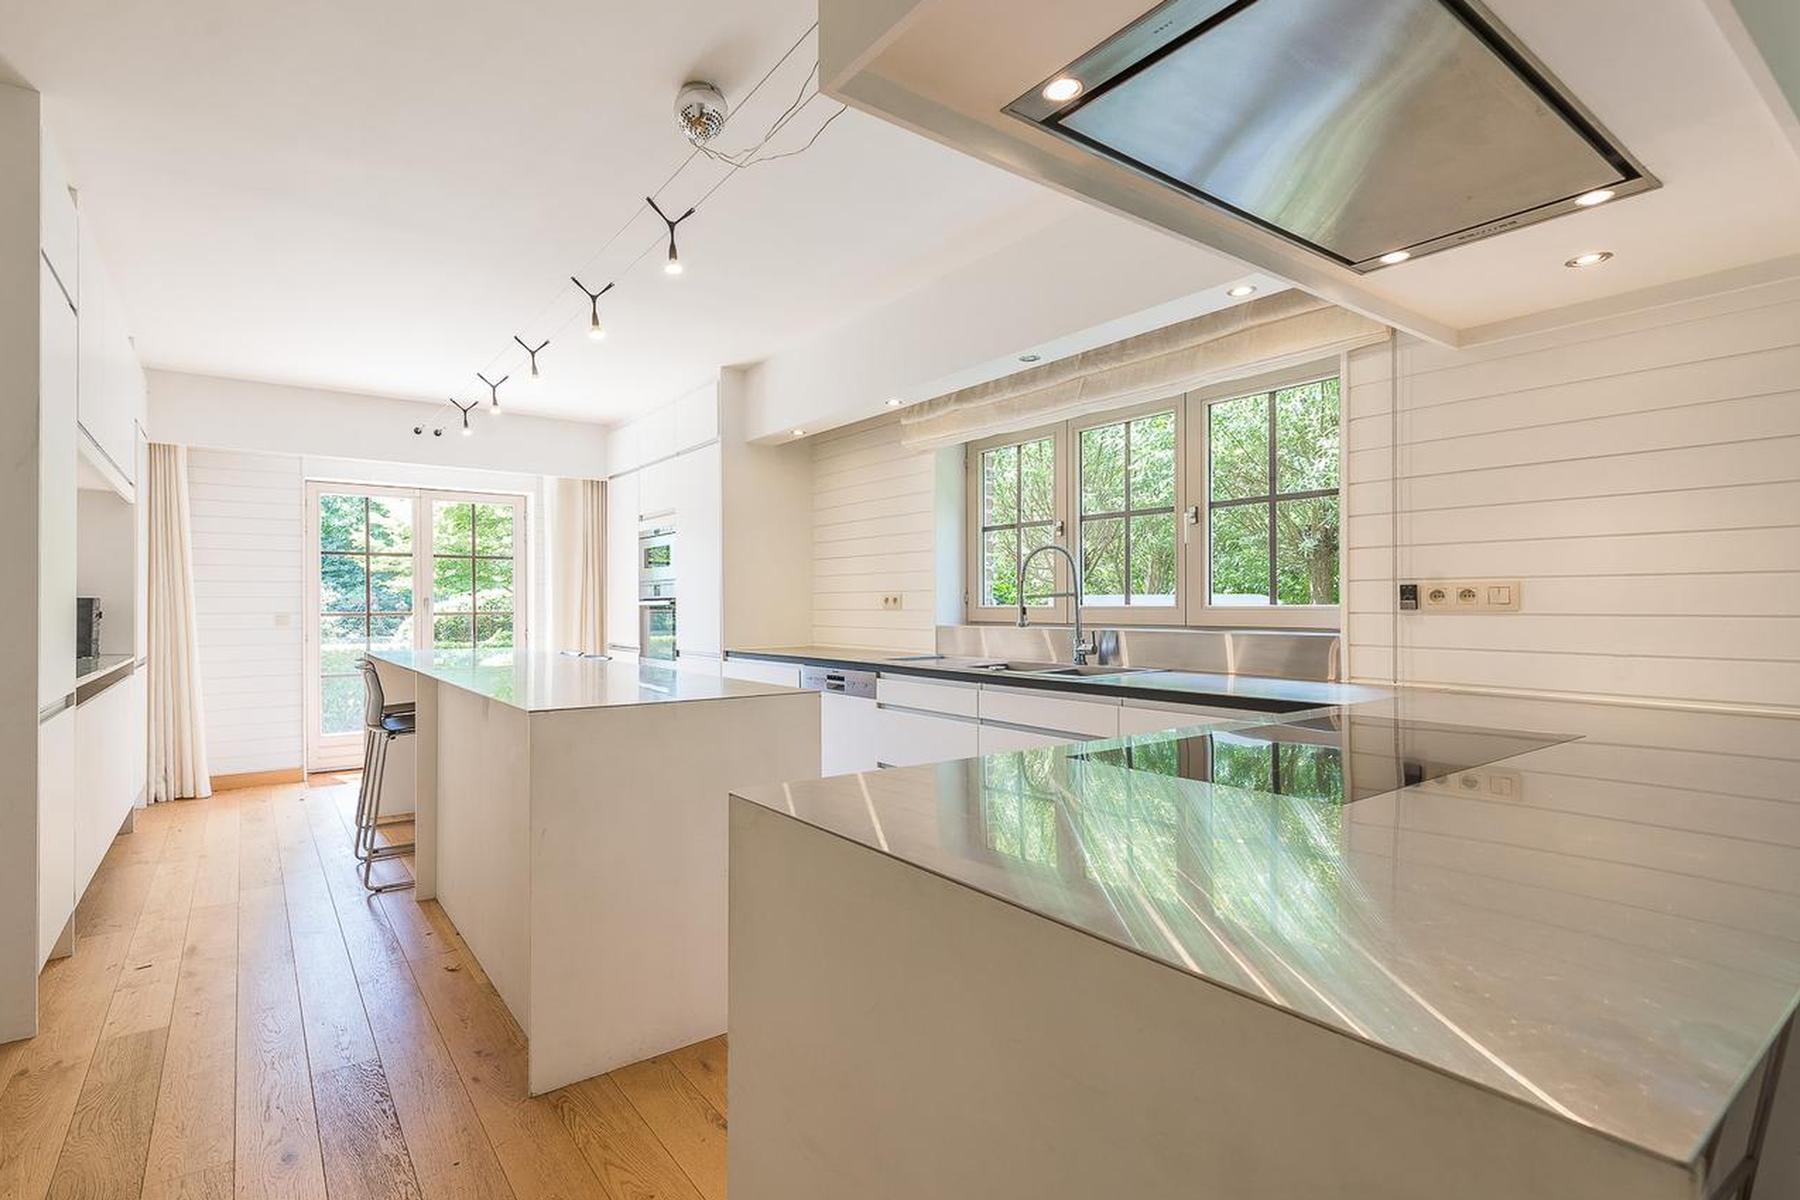 Other Residential for Sale at Waterloo I Quartier du Faubourg Waterloo, Brabant Wallon, 1410 Belgium